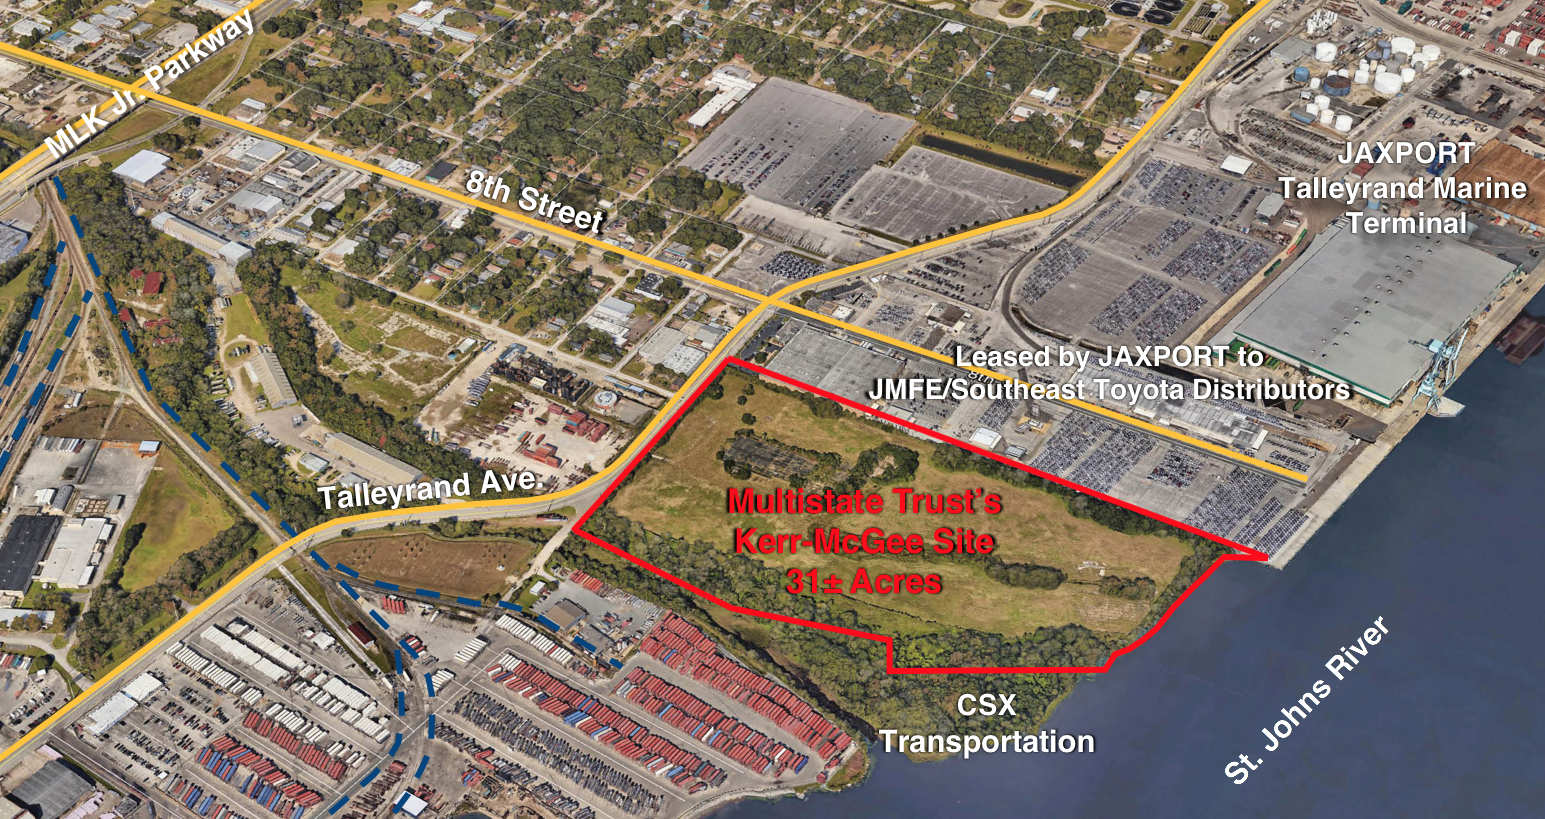 This map shows the location of the Multistate Trust's Kerr-McGee Chemical Corp – Jacksonville Superfund Site (outlined in red) in the Port of Jacksonville, Florida. To facilitate cleanup of the Site, the Multistate Trust acquired 2.8 acres of state-owned, submerged lands adjacent to the Site's St. Johns River shoreline in a land swap authorized by Florida's governor and cabinet. In exchange for the submerged lands, the State agreed to accept 14.5 acres of marsh and forest that the Multistate Trust acquired and offered as trade lands and that will be conserved as part of the adjoining Fort George Island Cultural State Park.